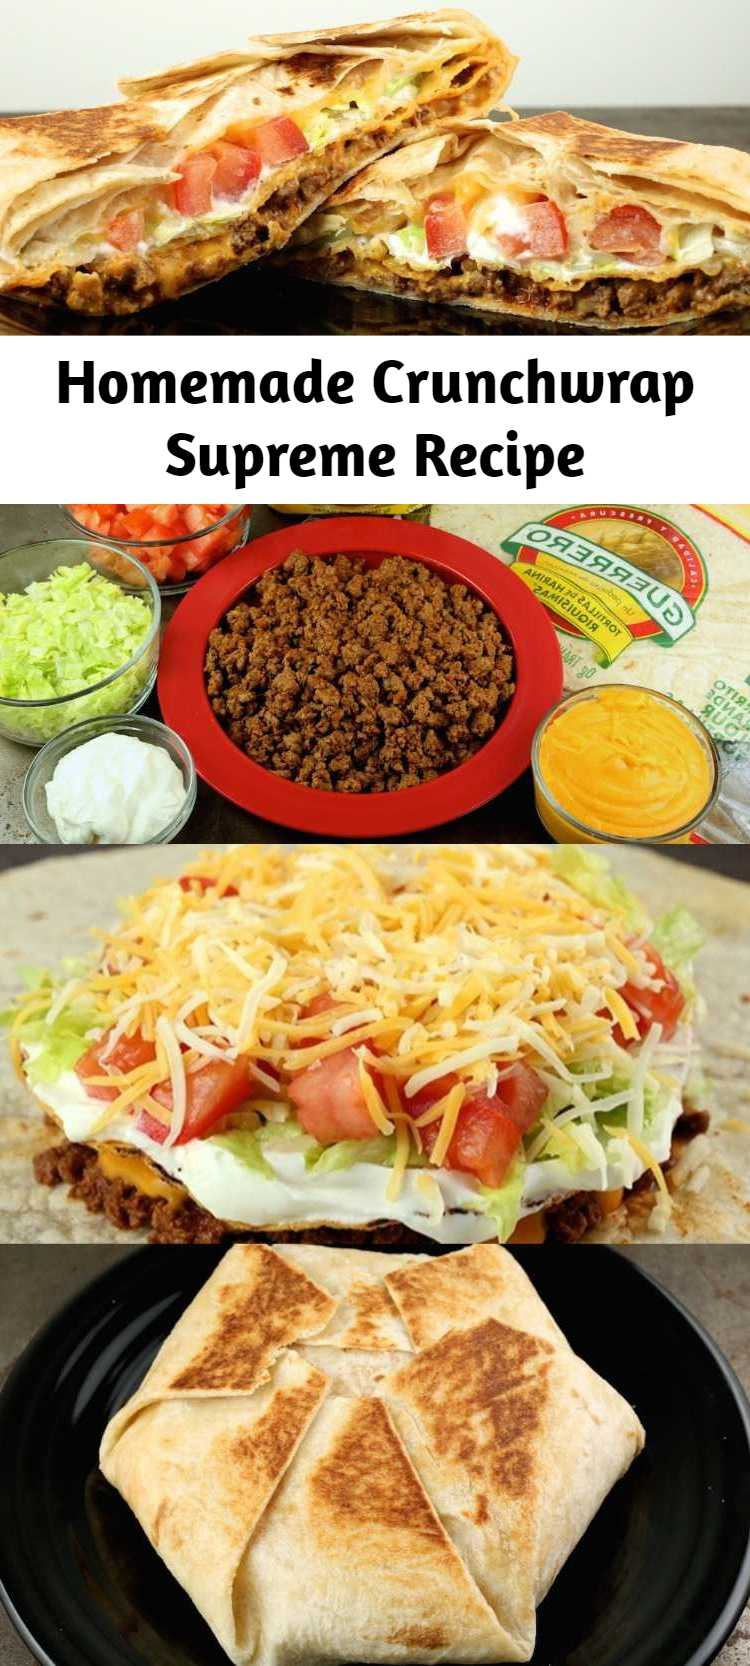 Homemade Crunchwrap Supreme Recipe - You can now make everyone's favorite Taco Bell item, the Crunchwrap Supreme, at home with this easy to follow recipe. Just like the fast-food version, this homemade Crunchwrap Supreme is packed with all the toppings!